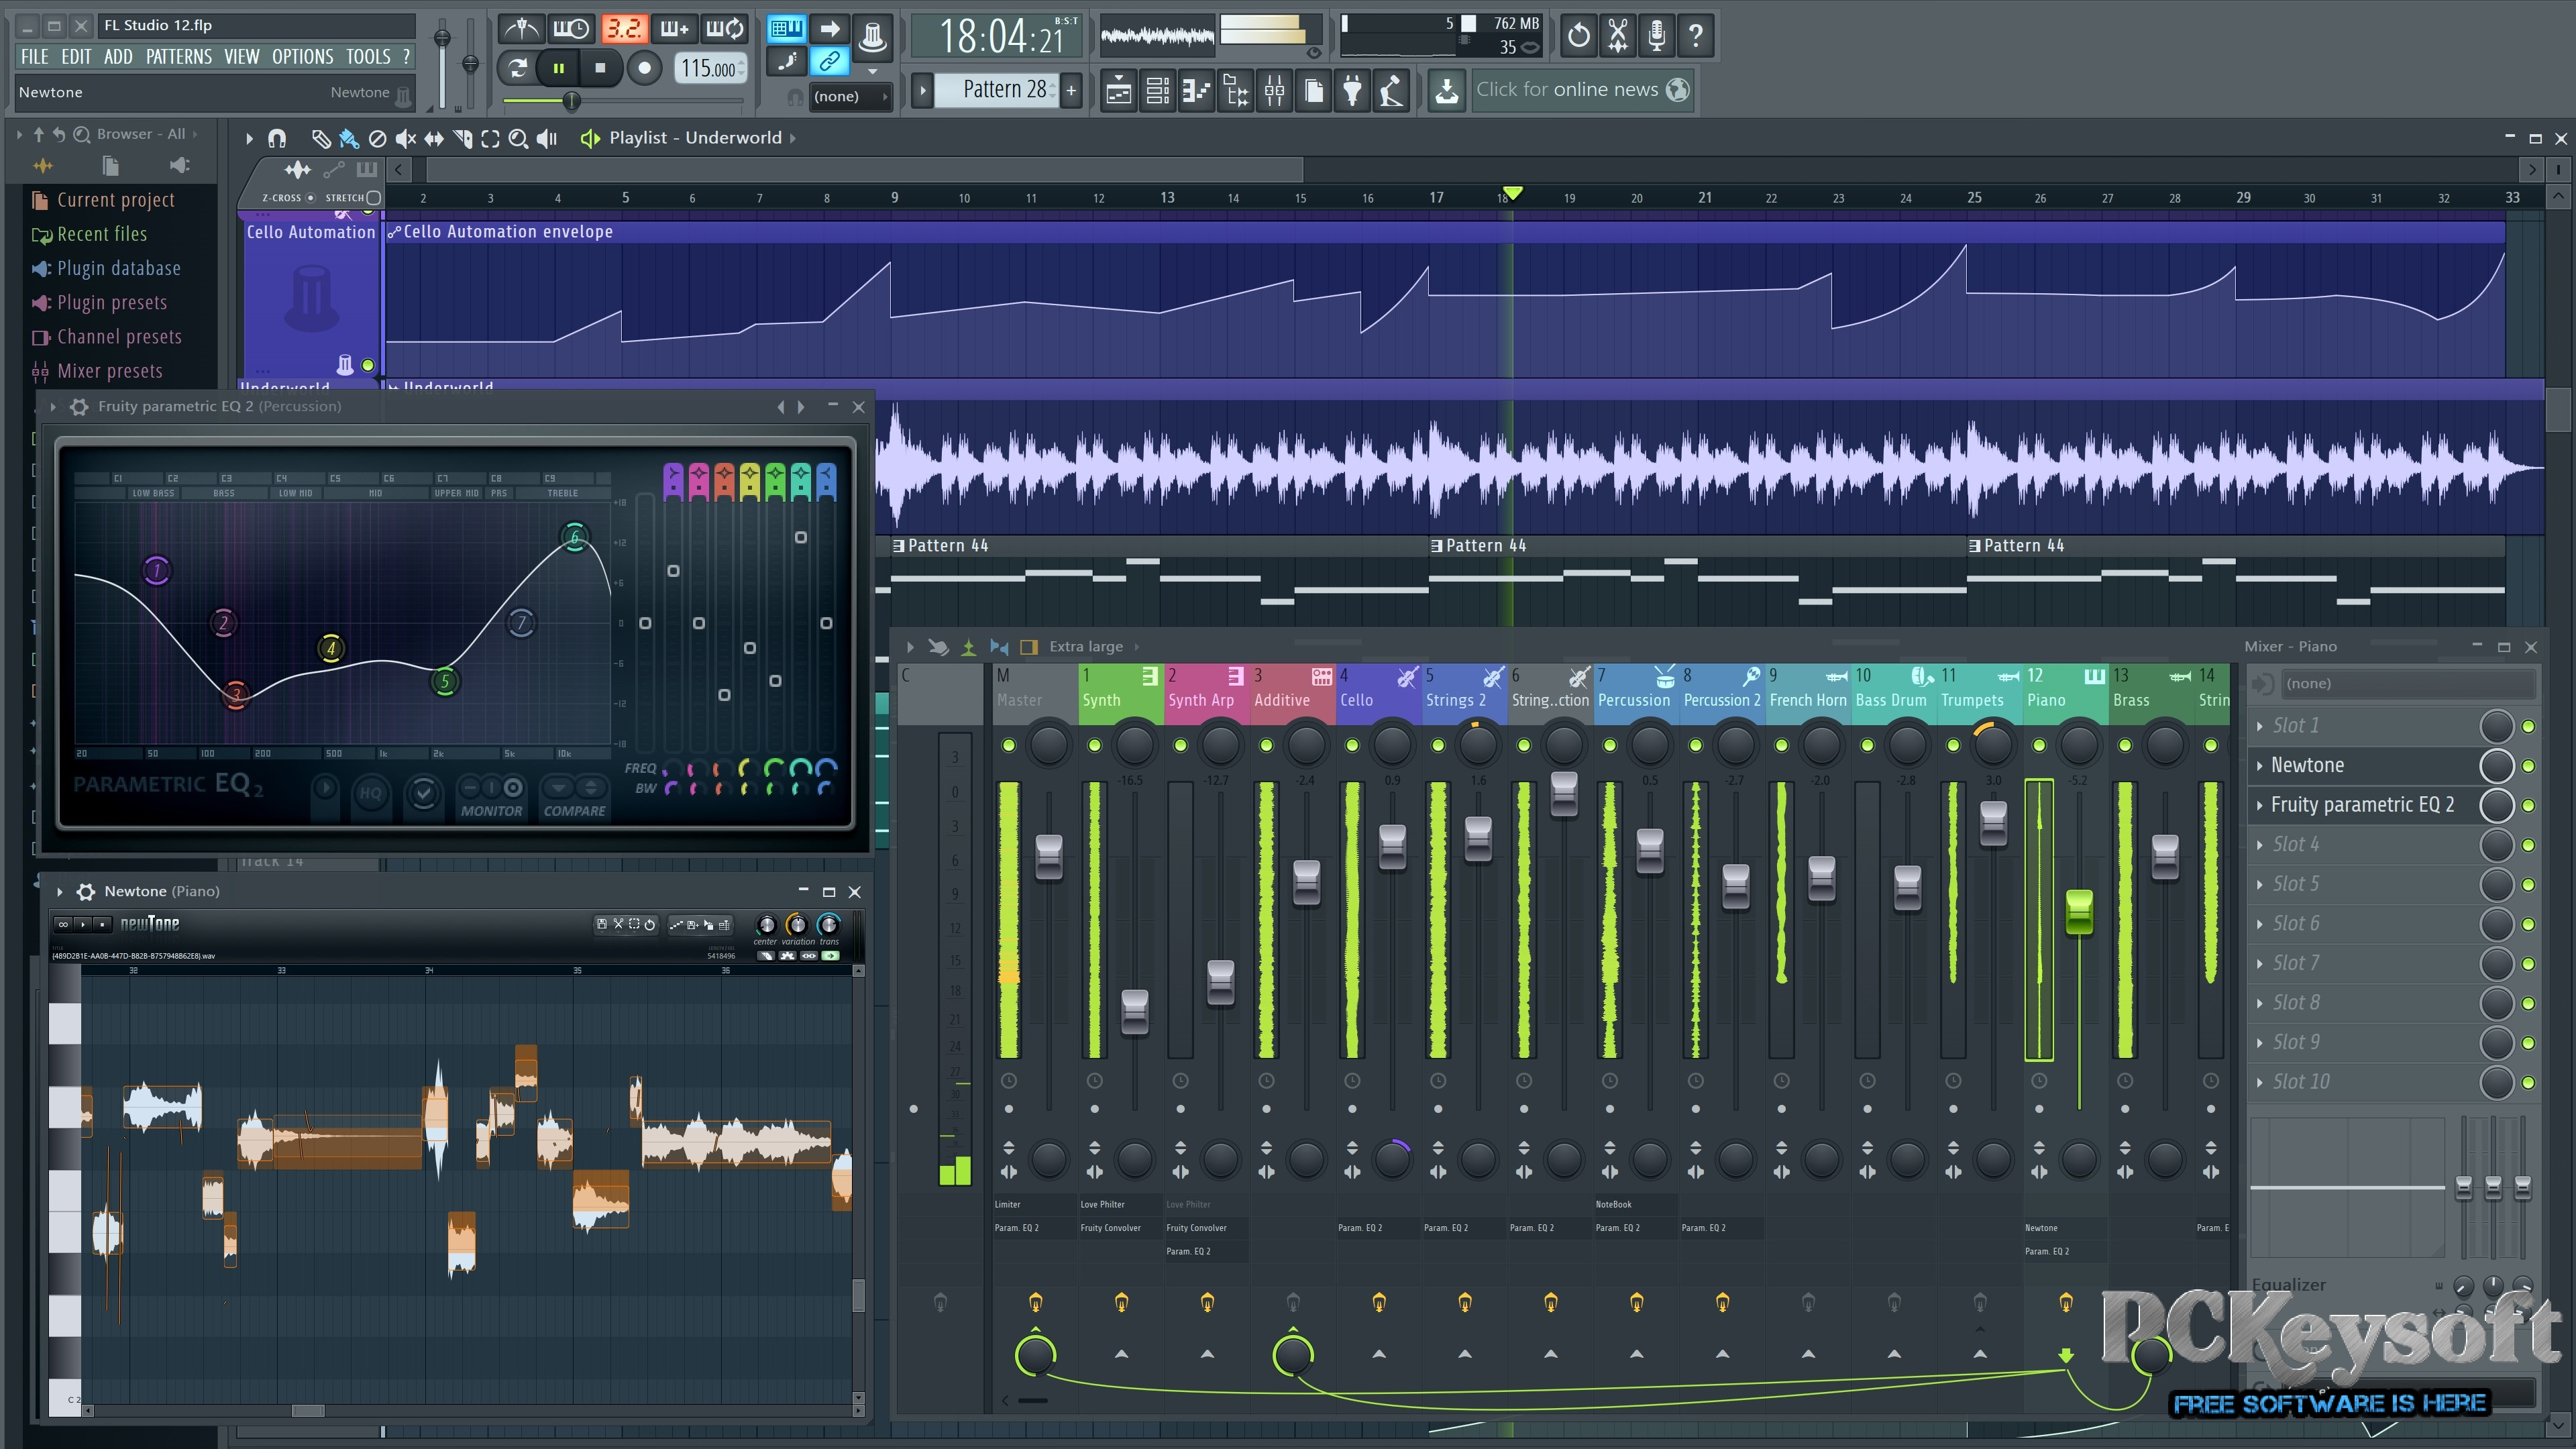 fl studio 12.5  full version crack pc